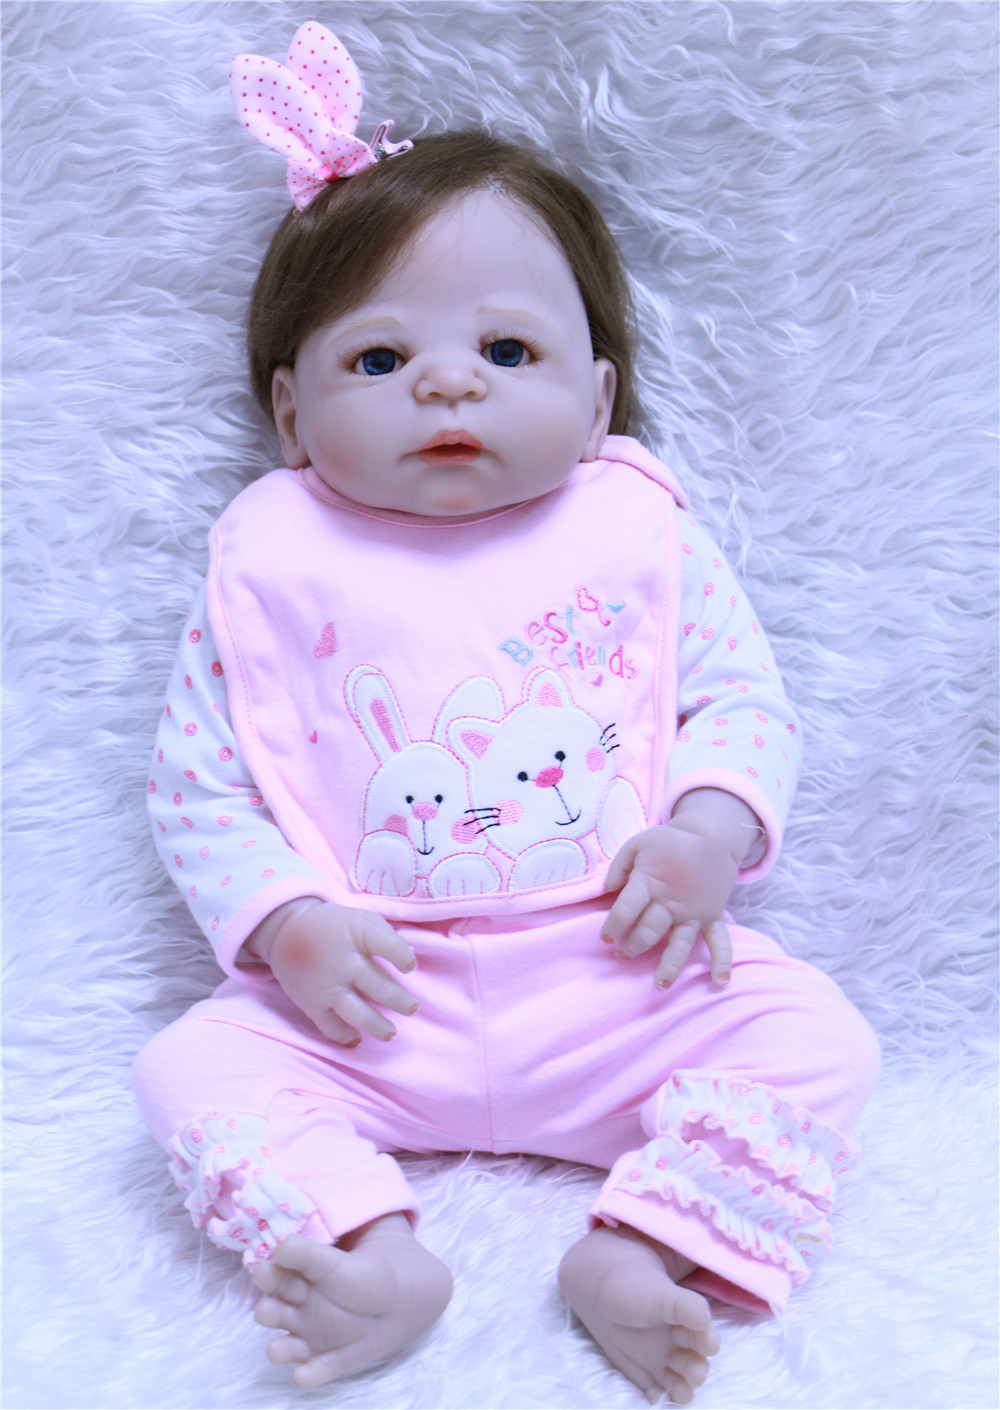 girl bebe 22 inch Silicone Reborn Babies Dolls Brinquedos Dolls For Girls Vinyl Realistic Doll Reborn Kids Christmas Gifts Toys npkdoll bebe reborn baby doll realistic soft silicone reborn babies juguetes girl 22 inch 55cm adorable kids brinquedos toy